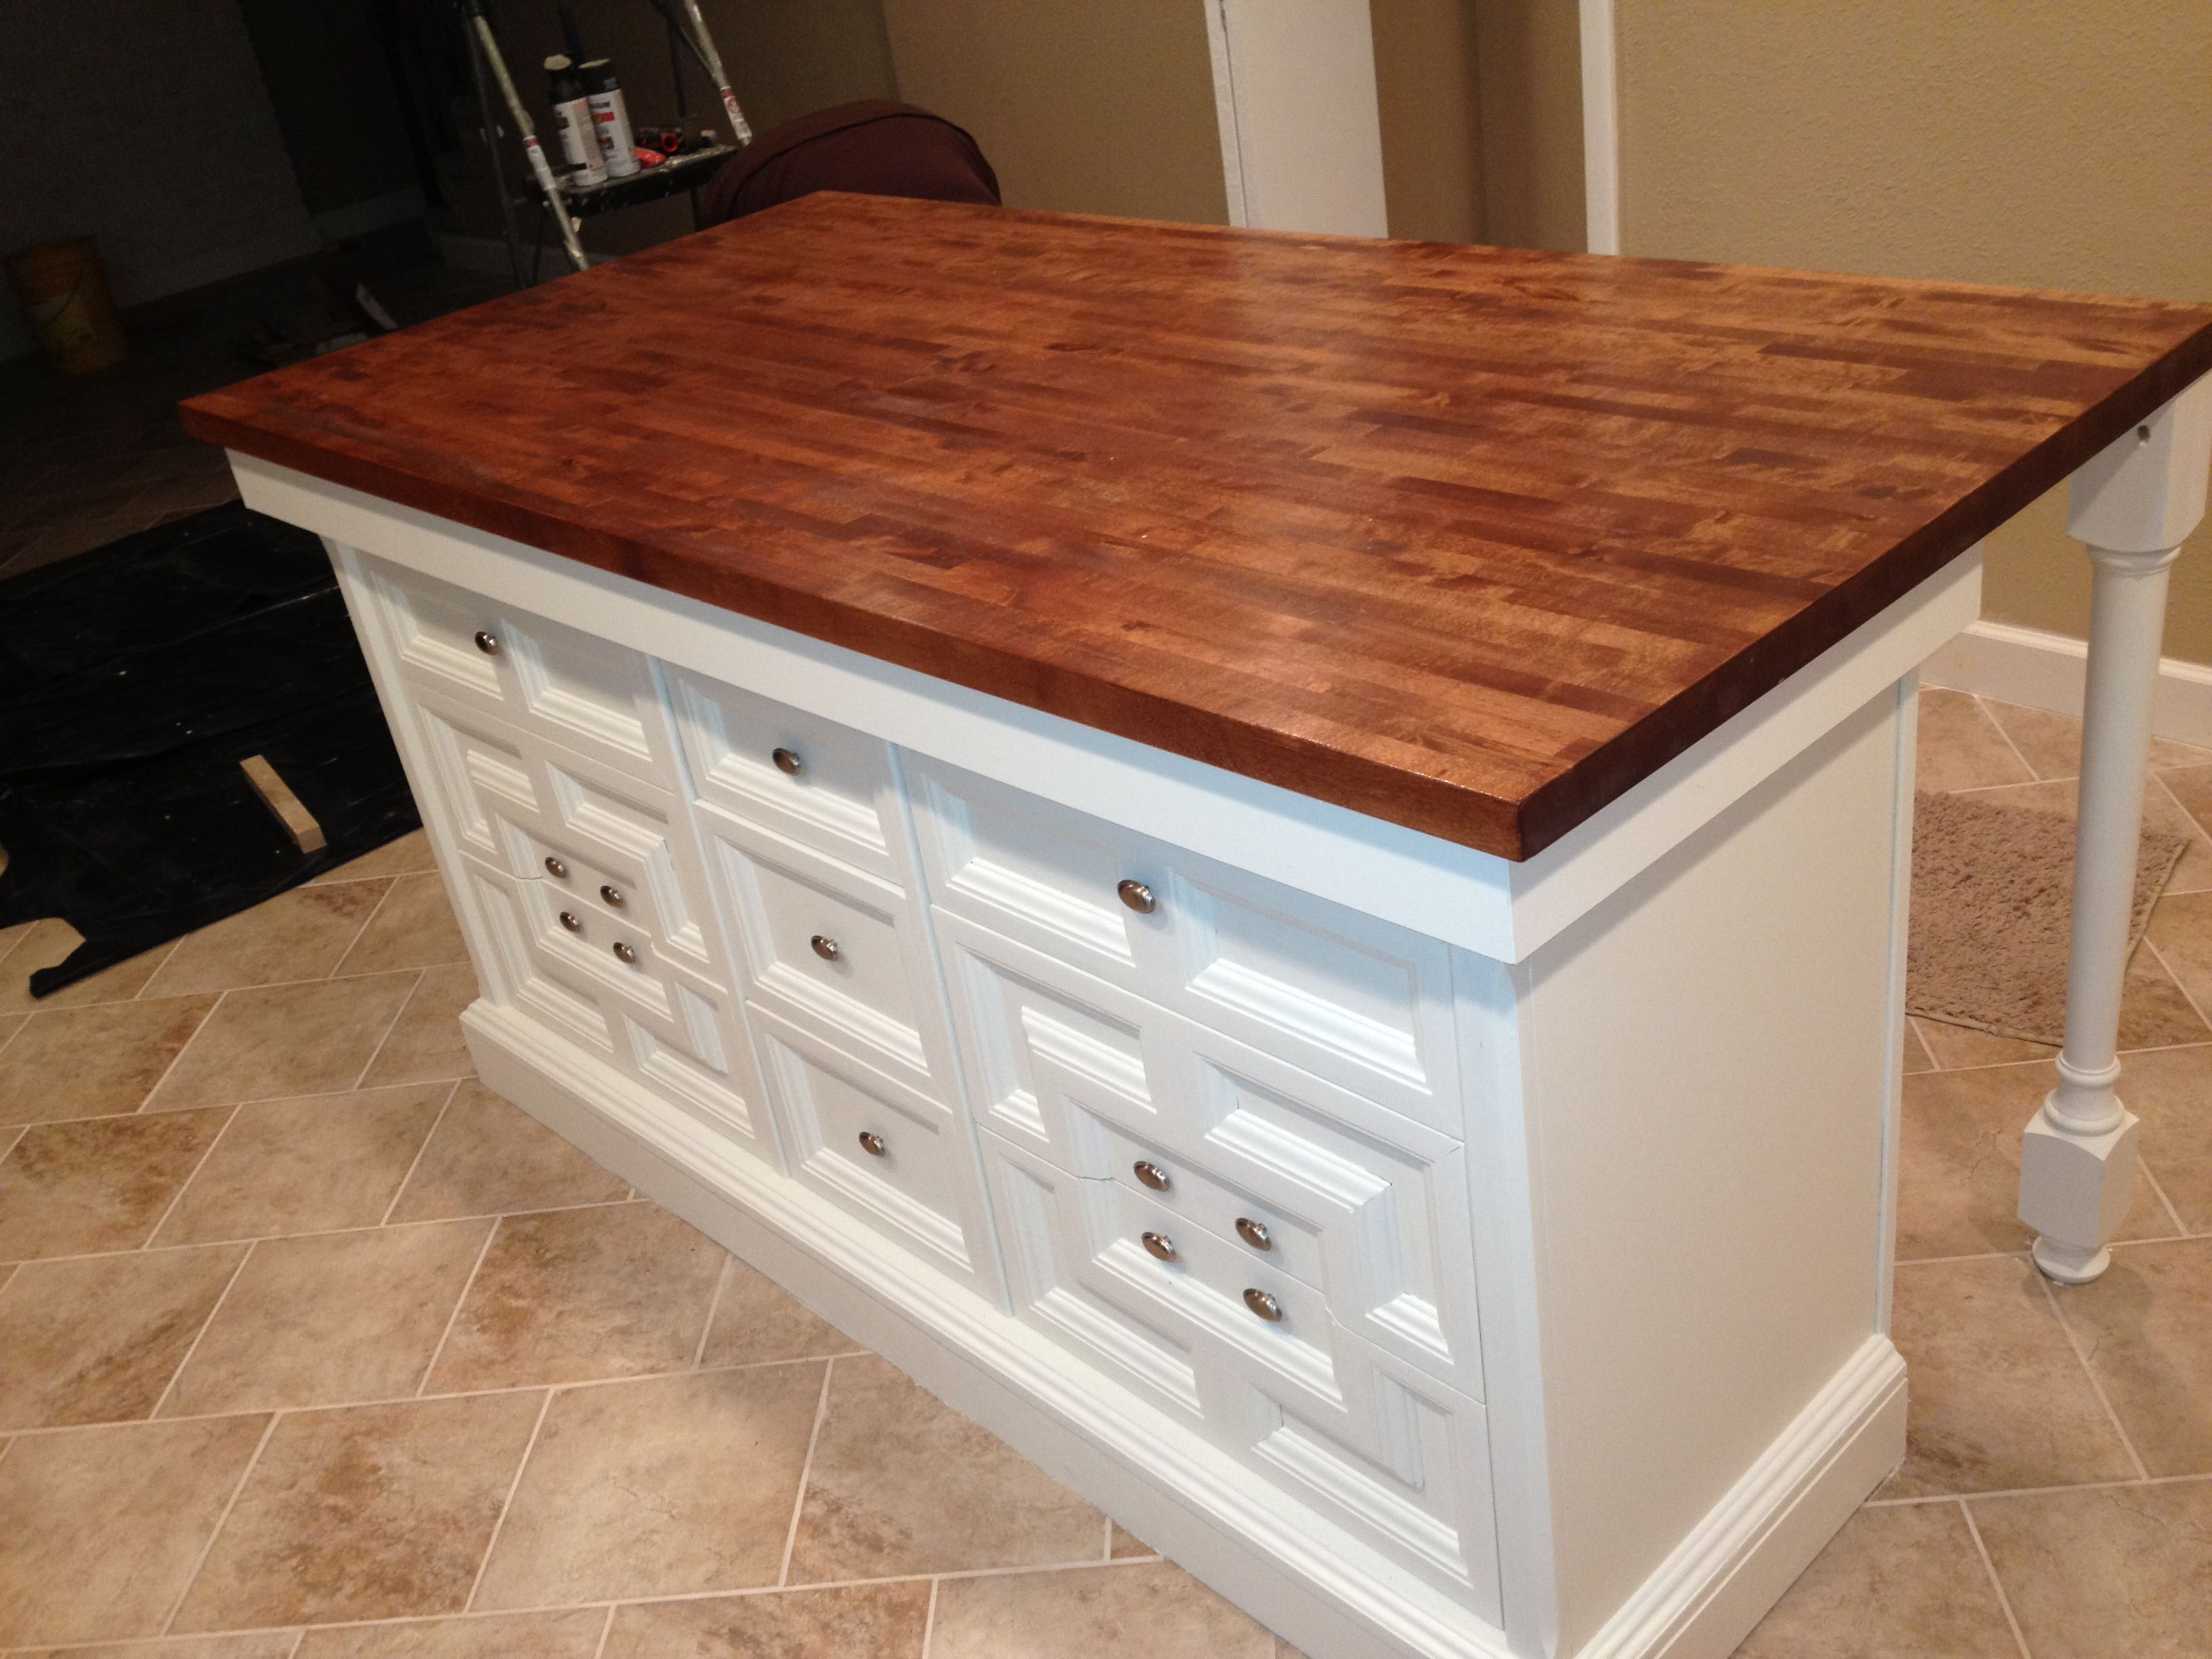 Self Made Island From An Antique Dresser My Wife Designed Kitchen Island Made From Dresser Interior Design Kitchen Small Diy Kitchen Remodel